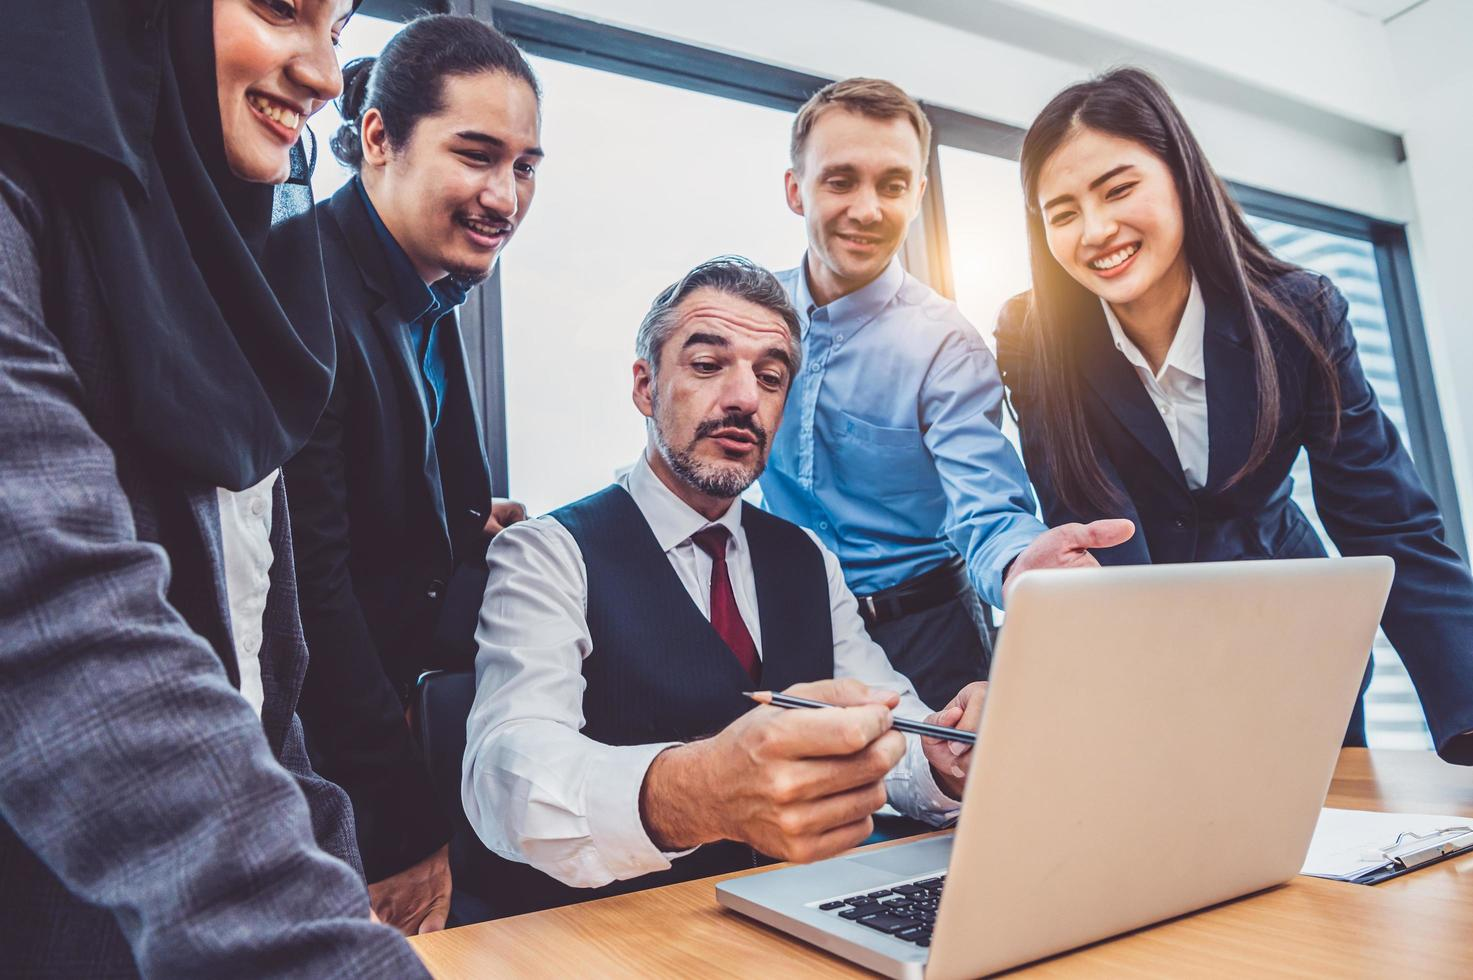 Group of business people working on laptop photo